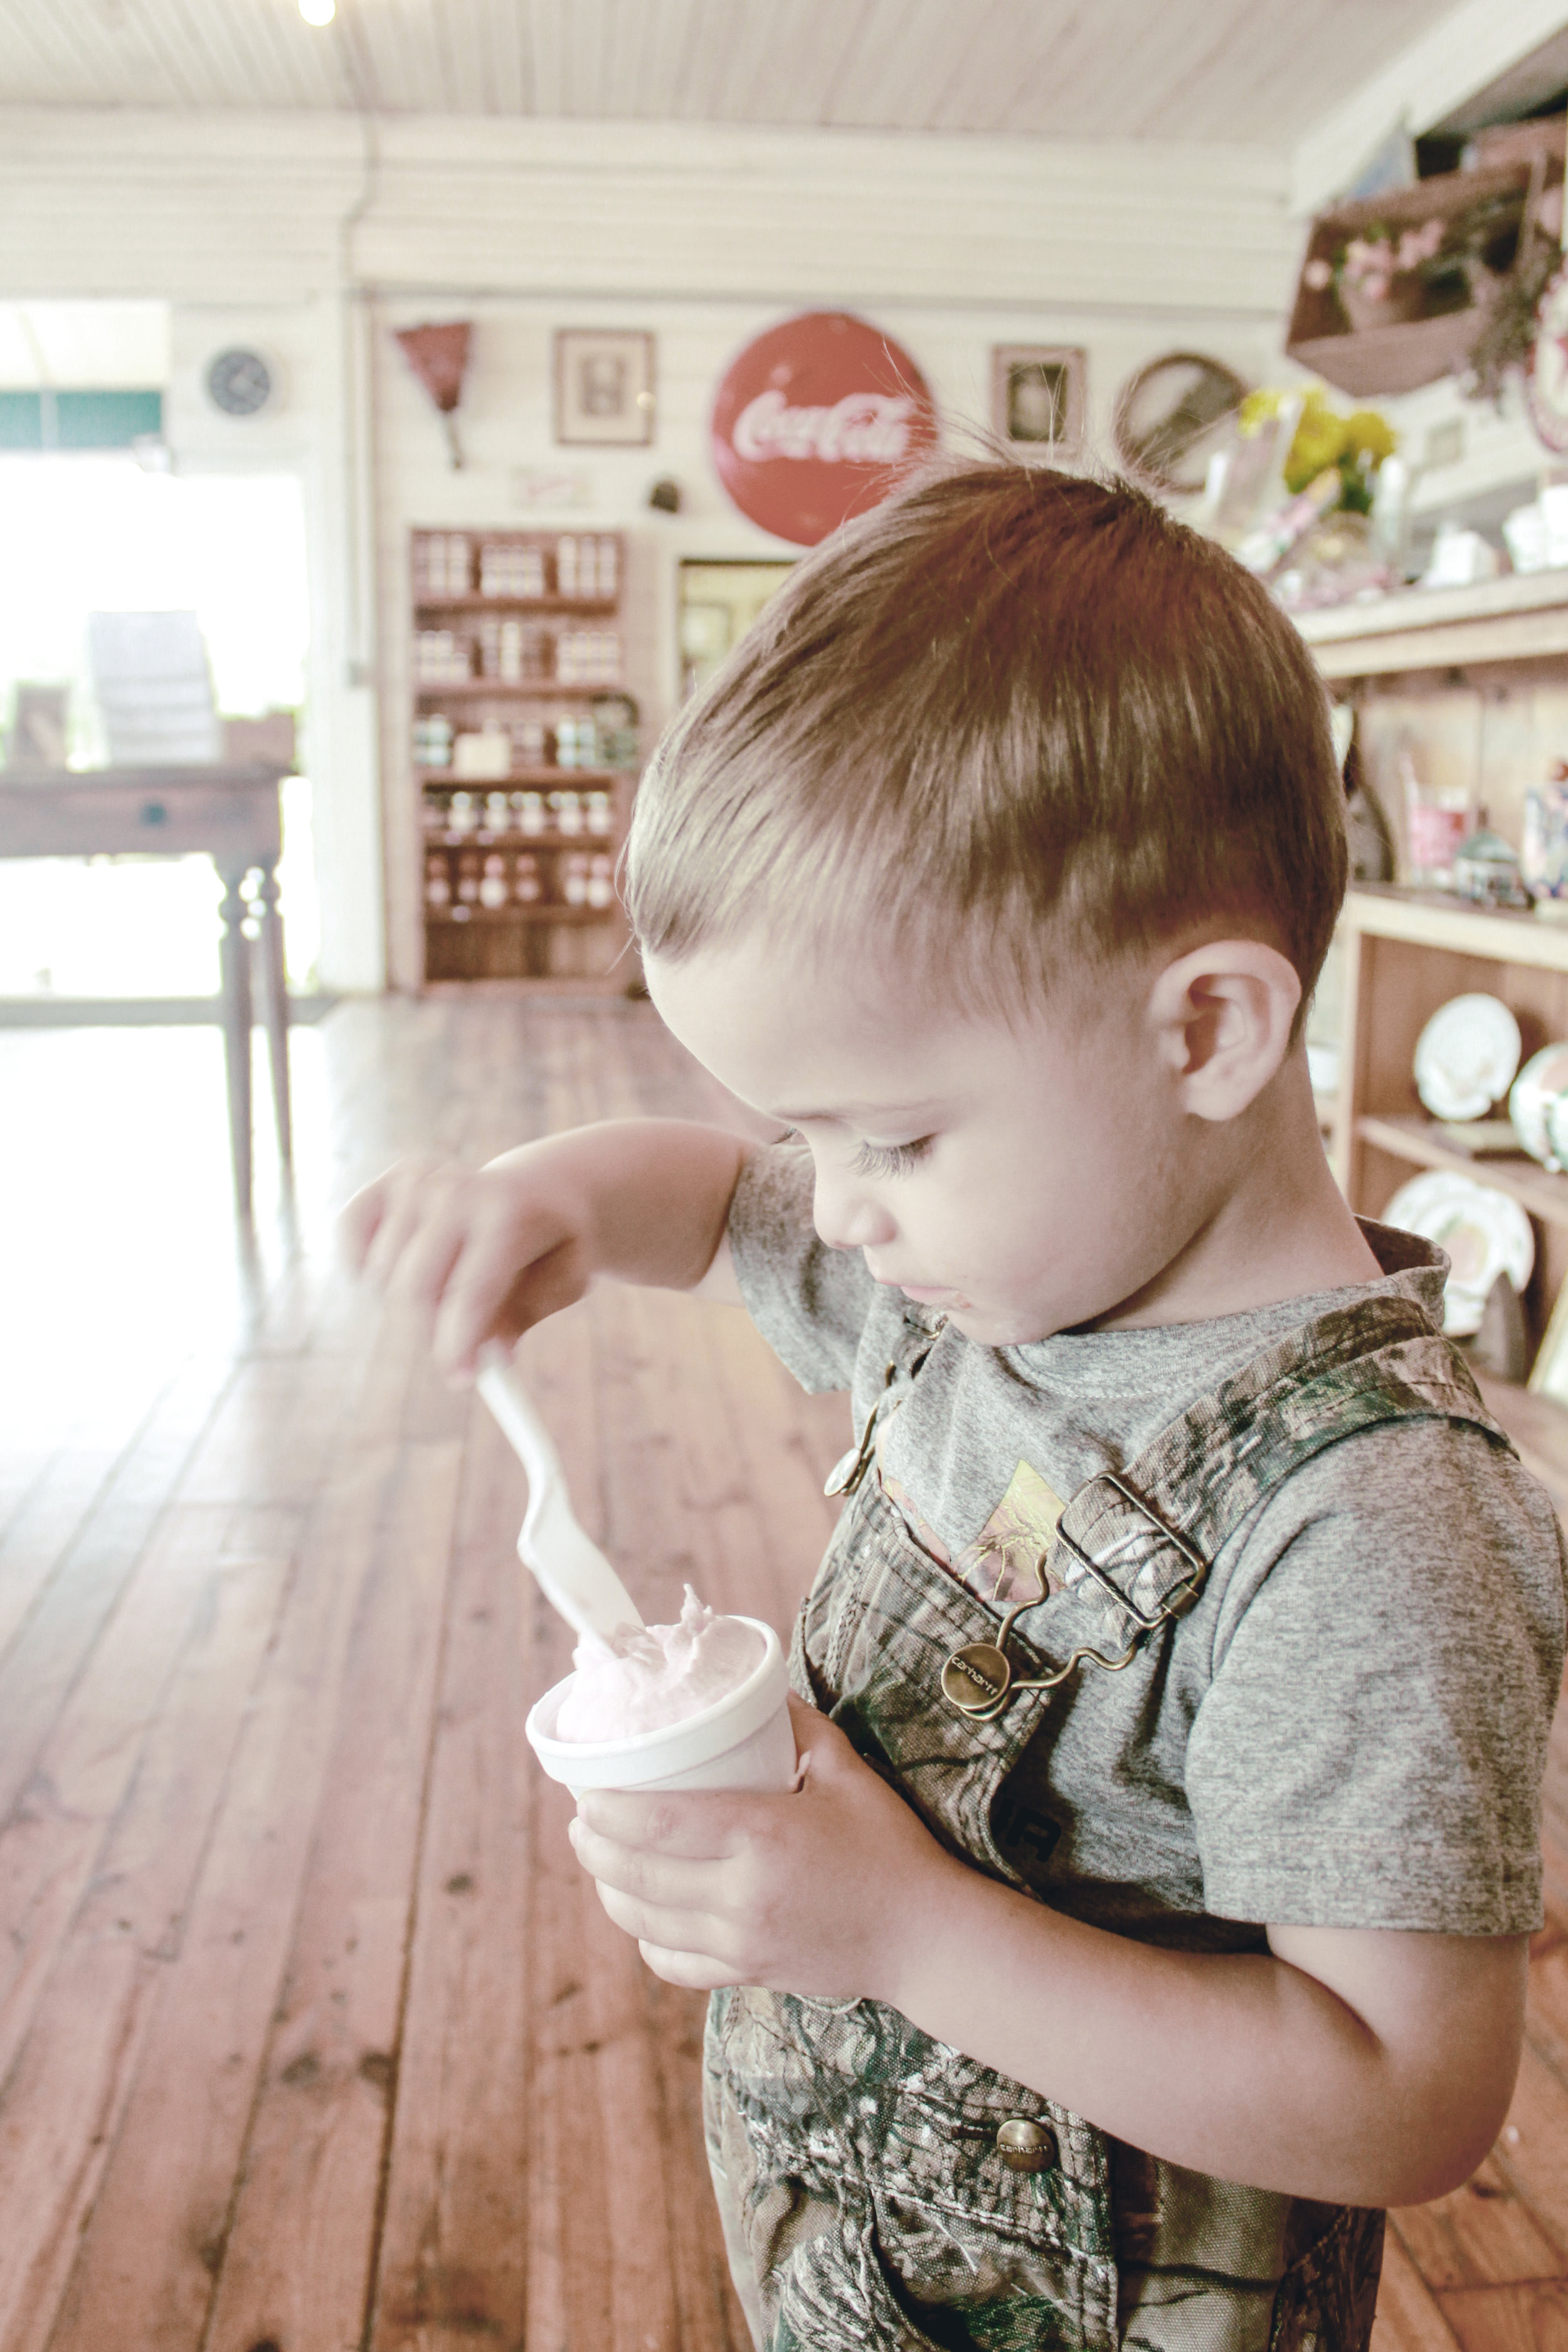 eating ice cream at the peach farm / heirloomed travel